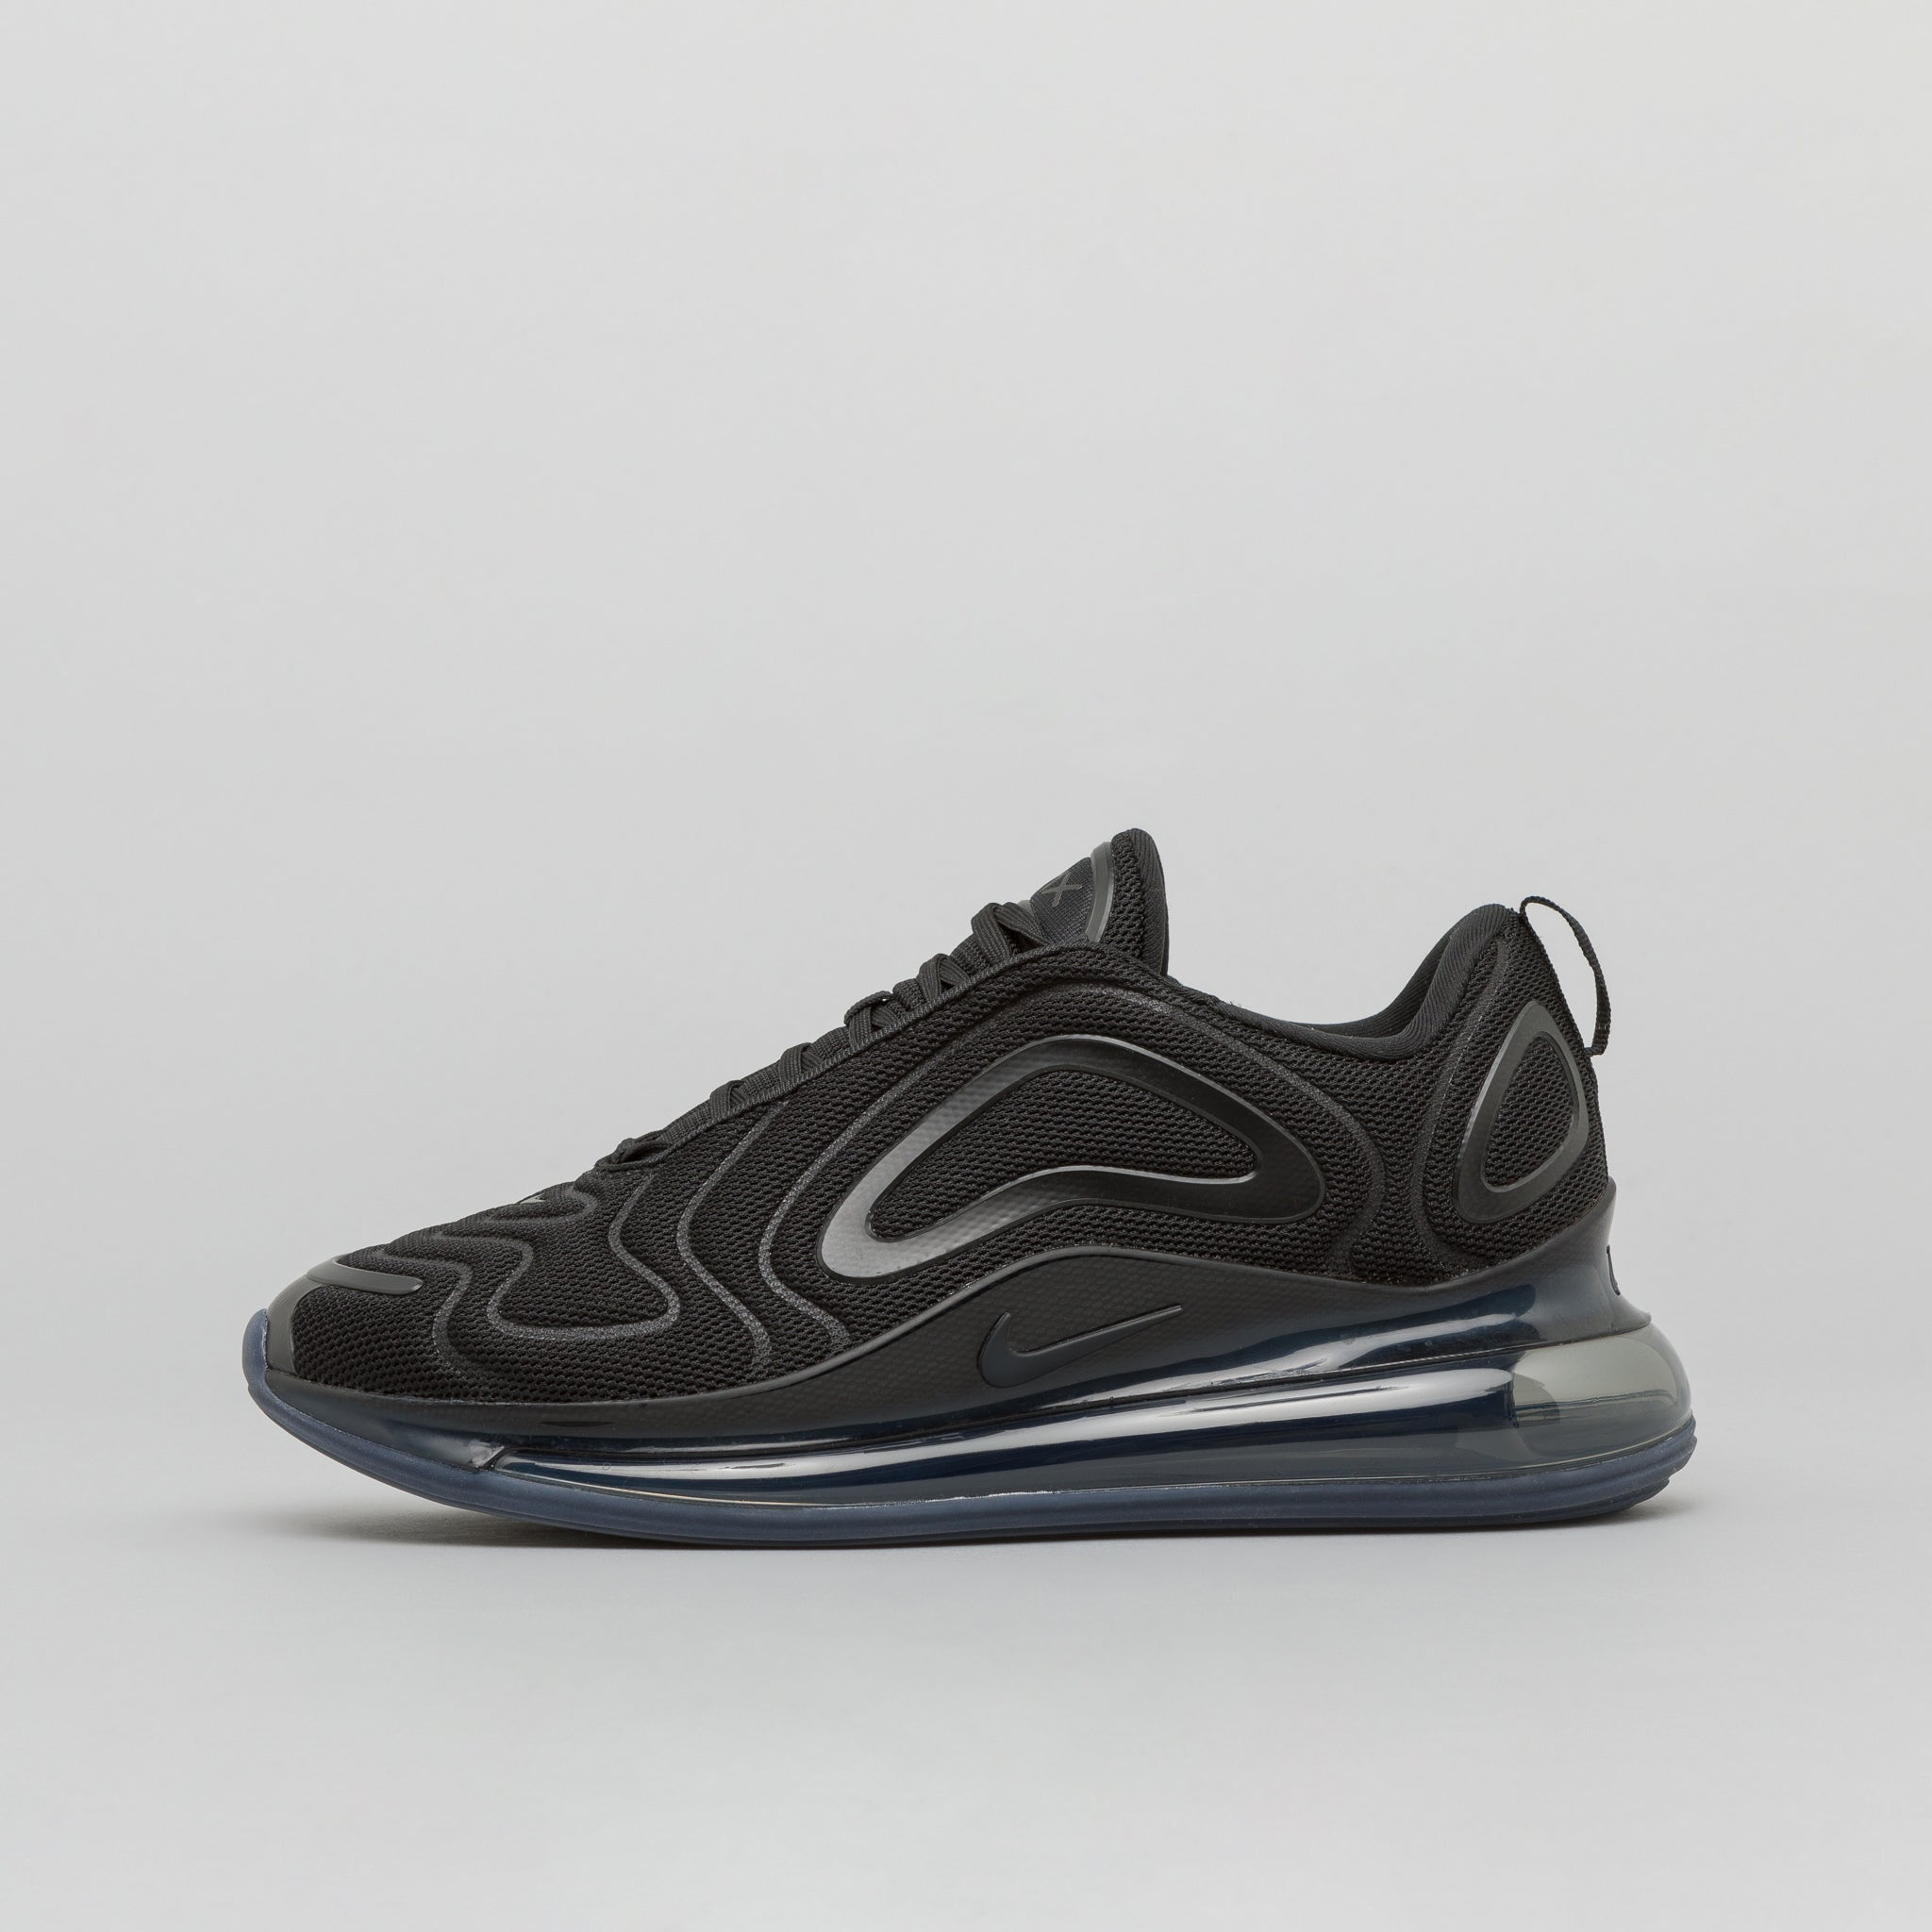 Air Max 720 in Black